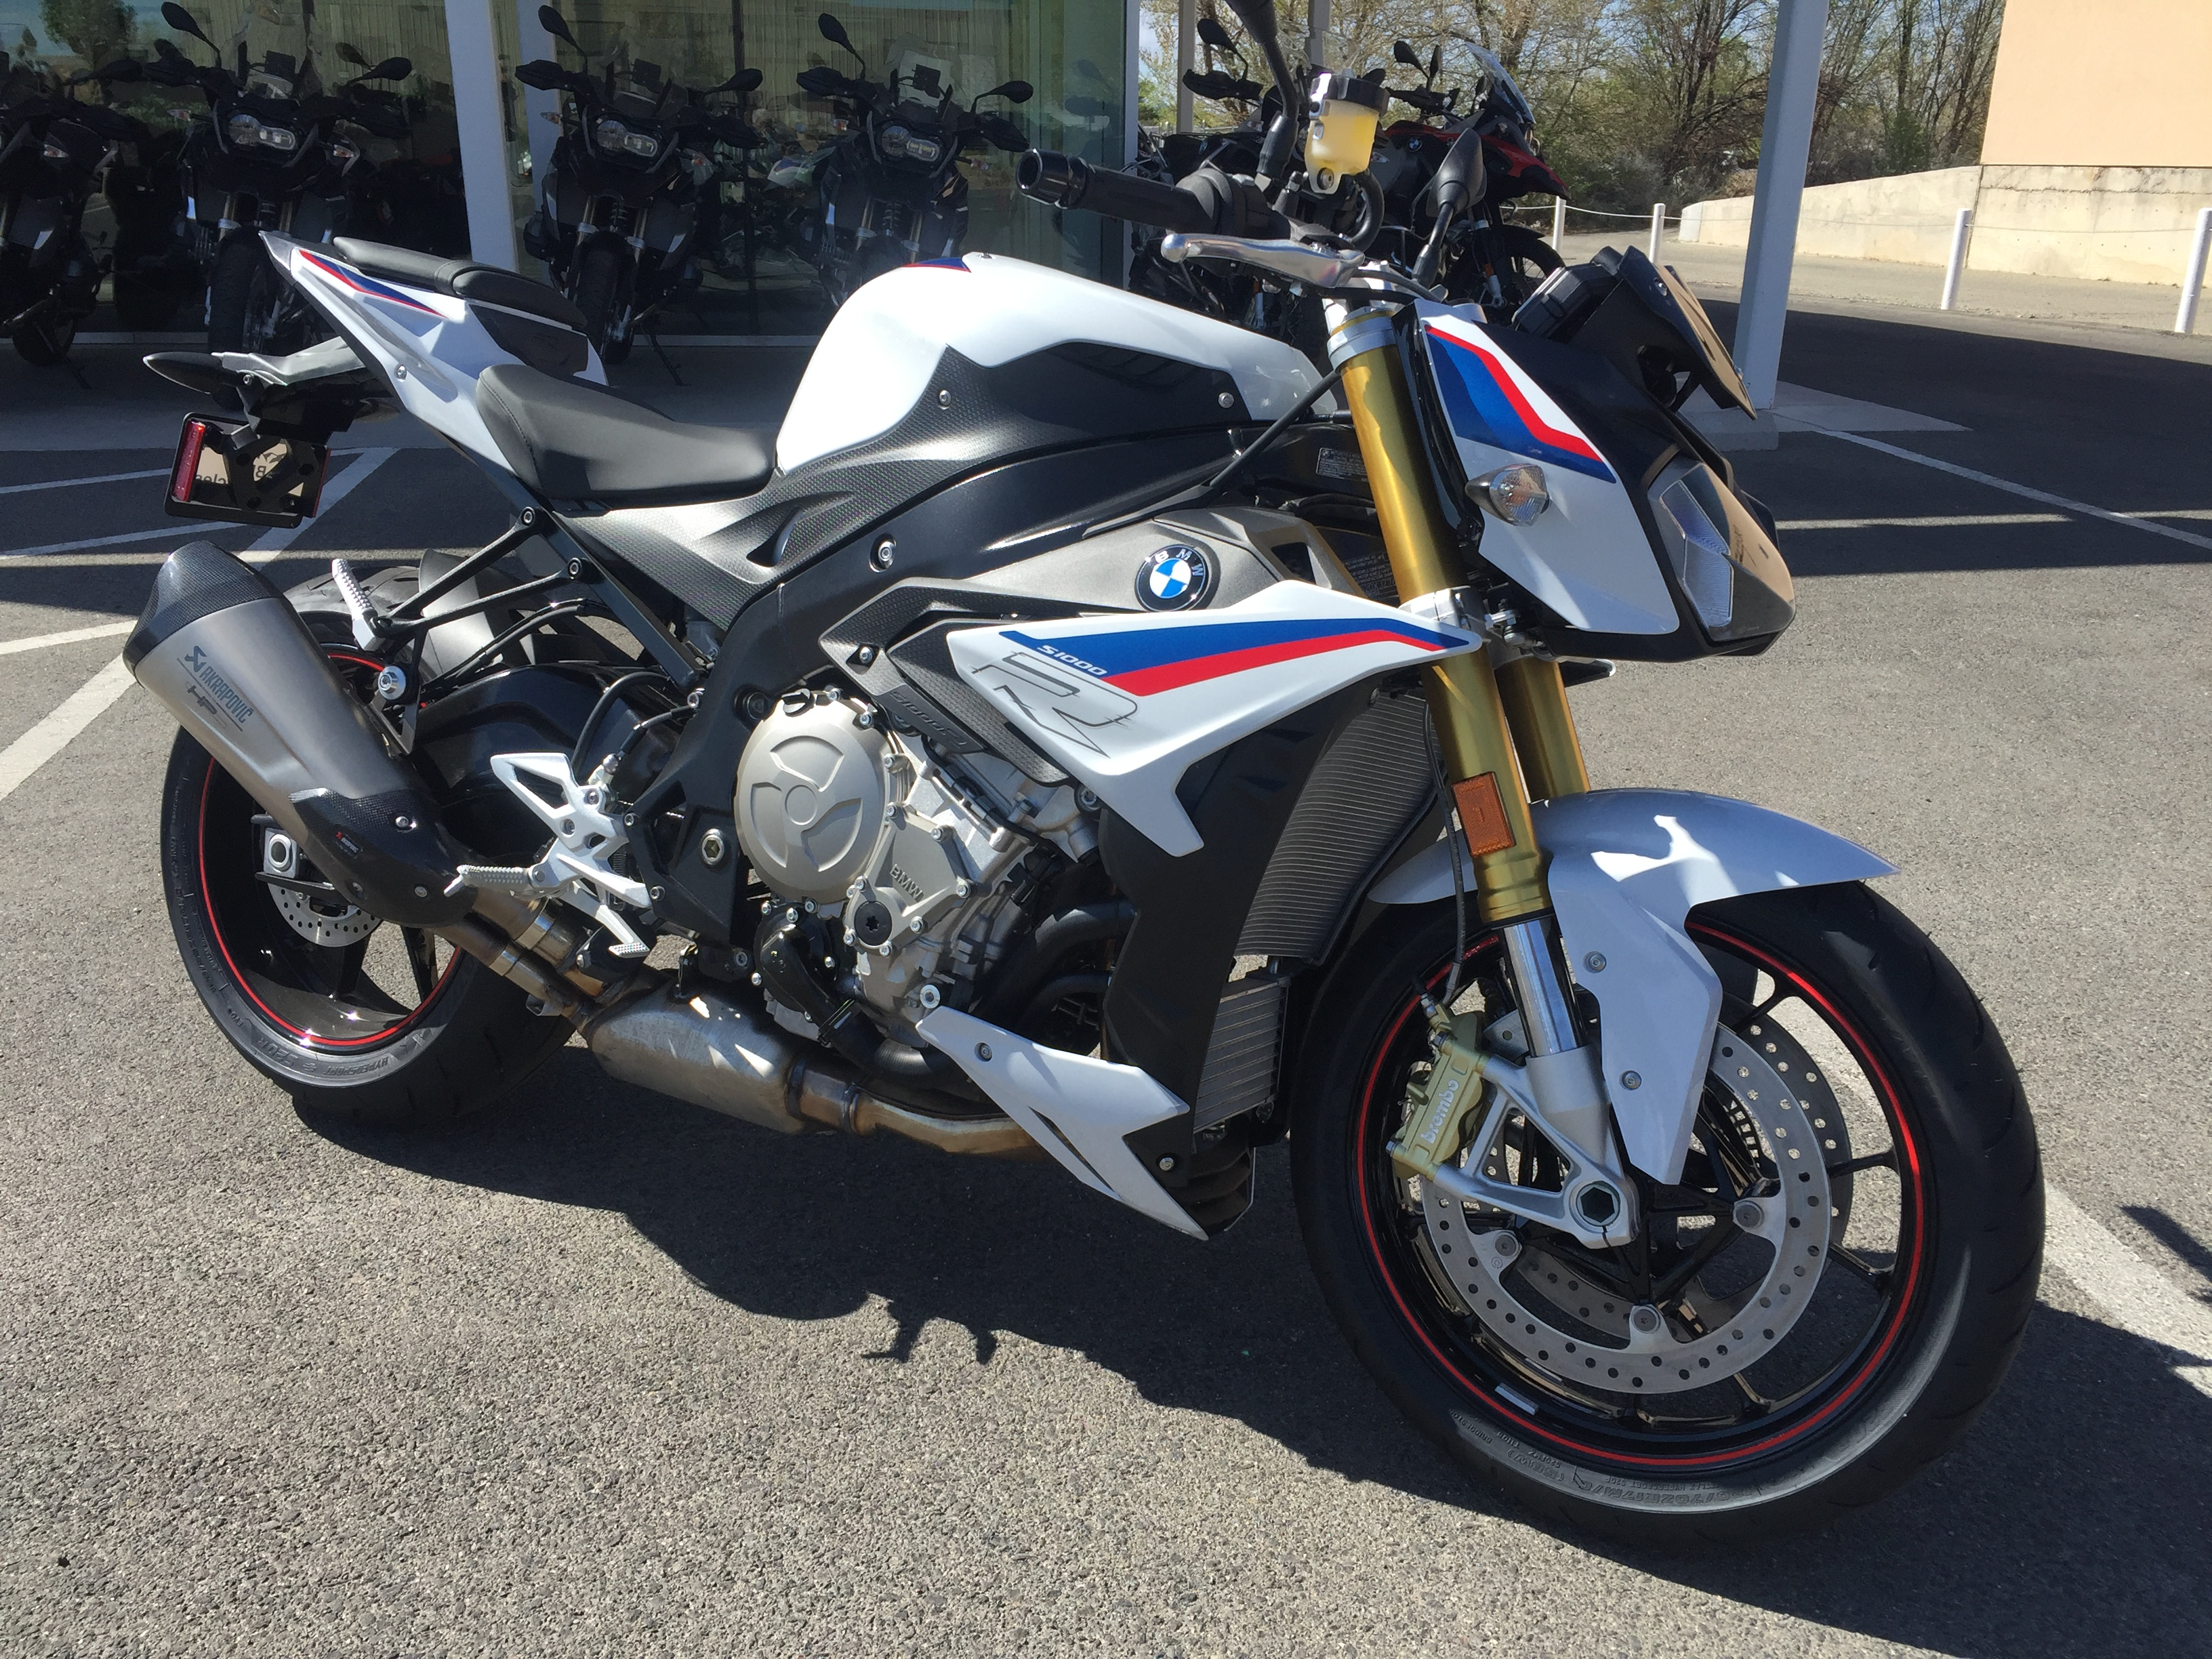 New BMW Motorcycles - Santa Fe BMW Motorcycles